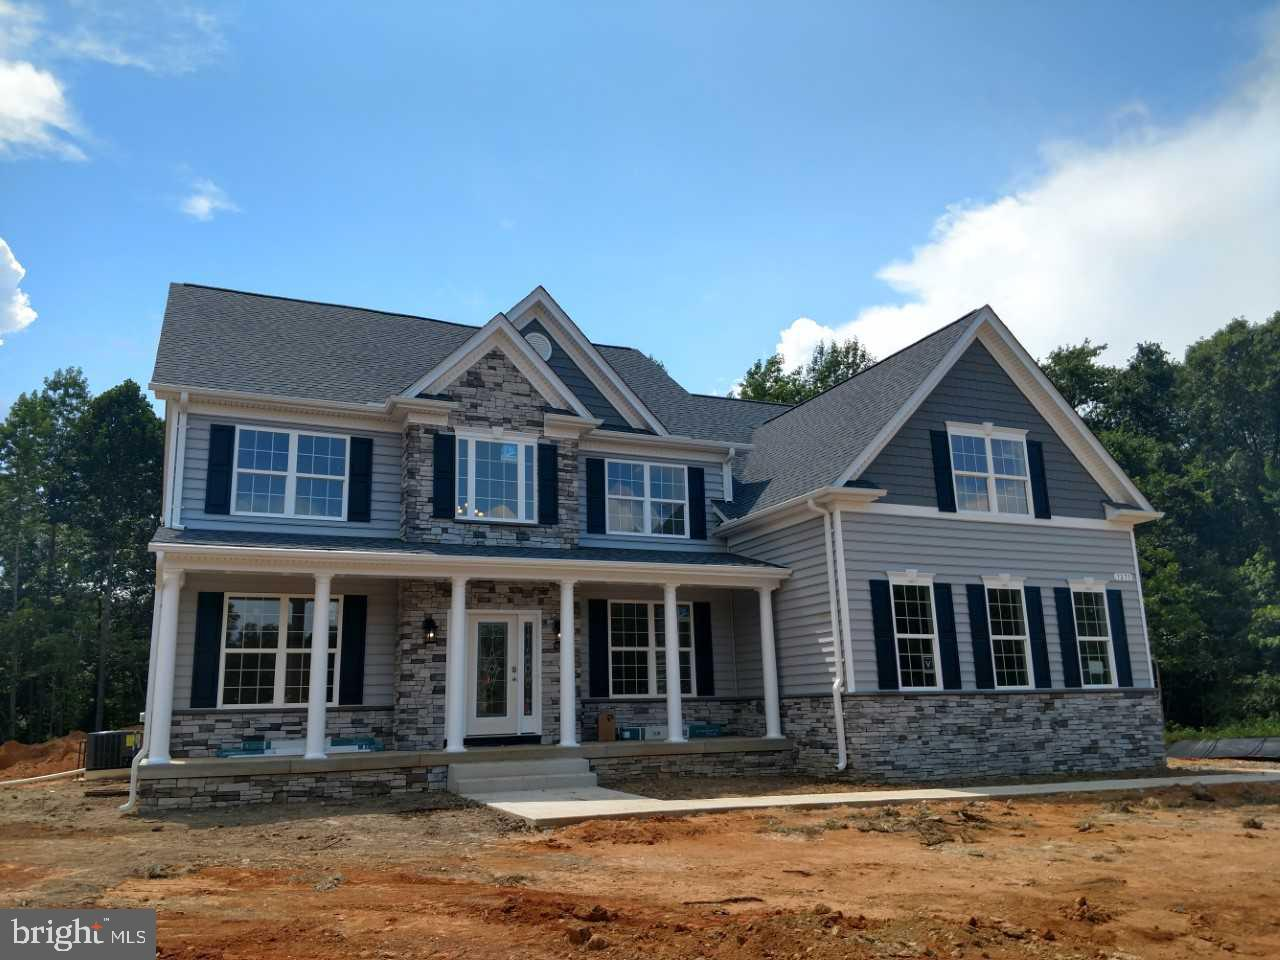 7271 RUSSELL CROFT CT., PORT TOBACCO, MD 20677